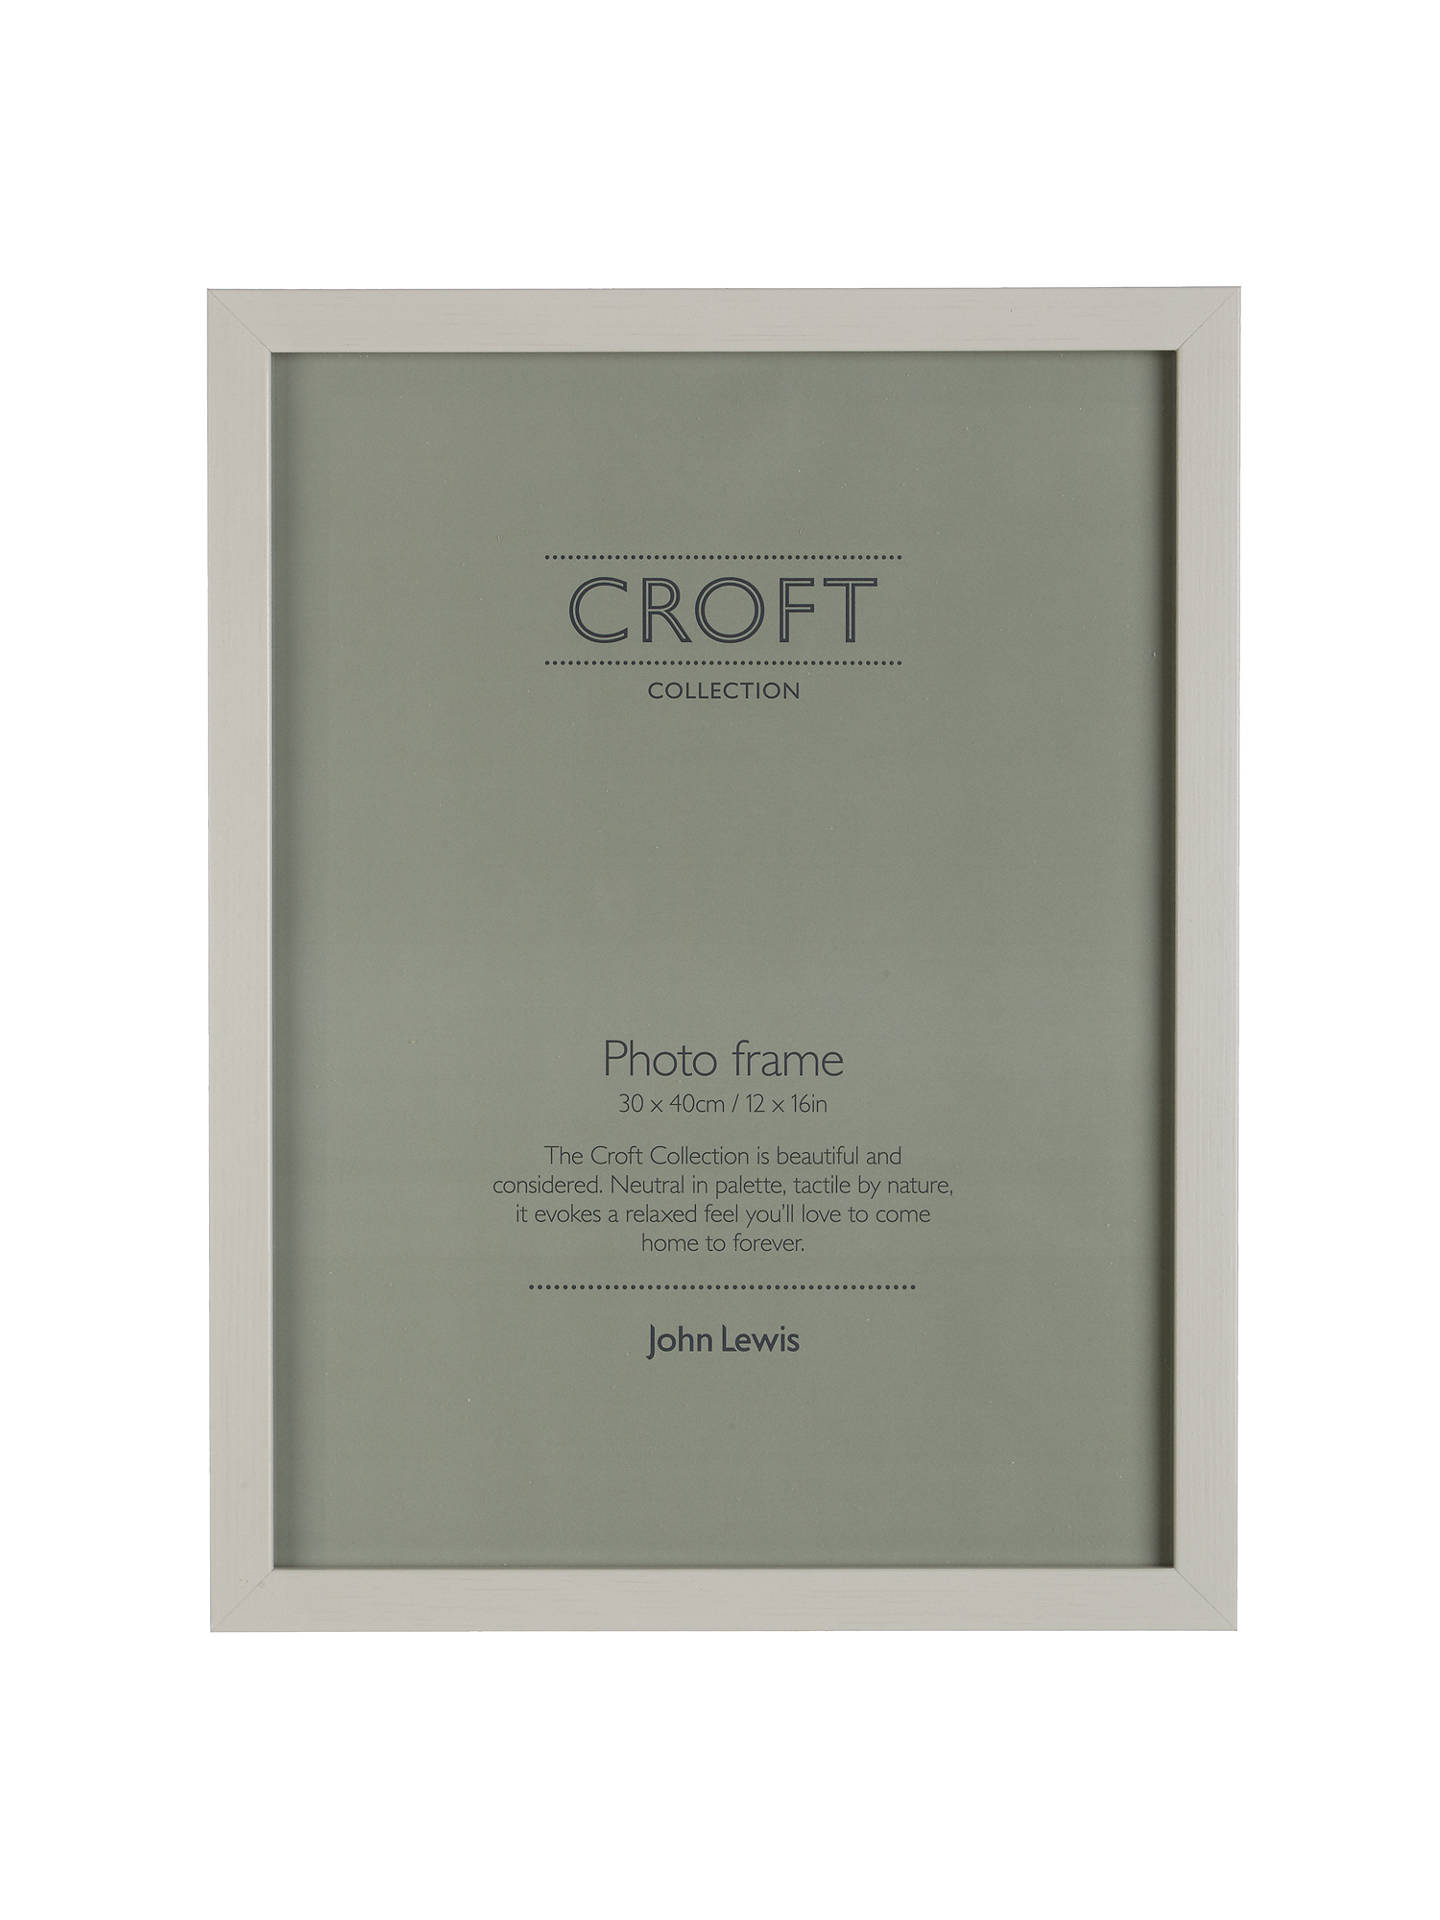 Croft Collection Photo Frame Fsc Certified 30 X 40cm 12 X 16 At